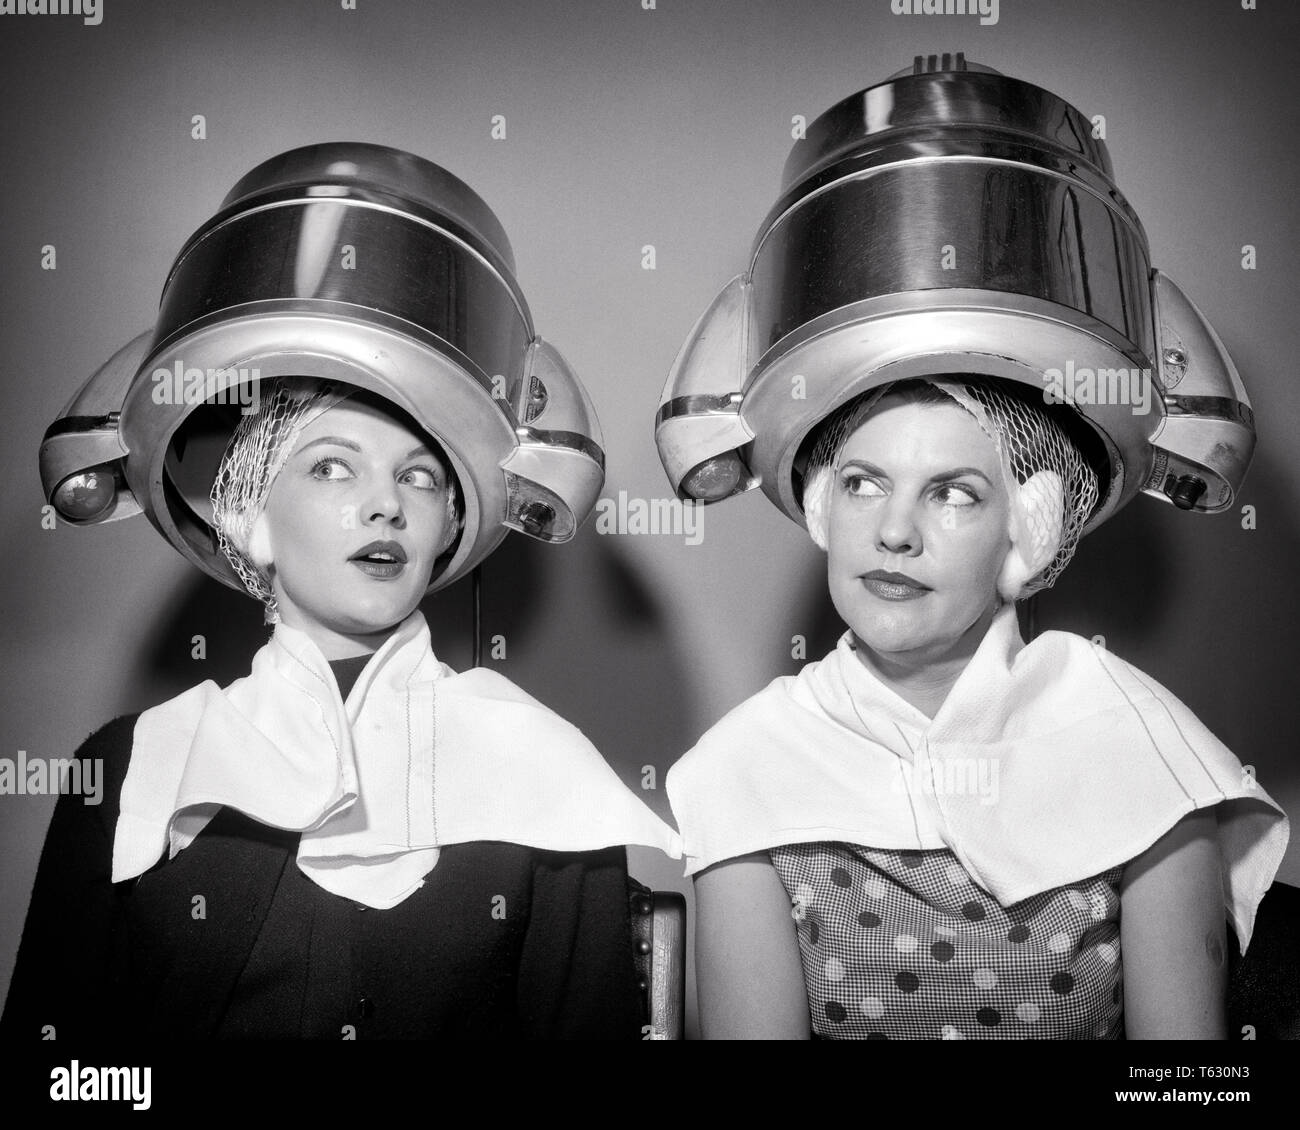 1950s TWO WOMEN SITTING UNDER BEAUTY SALON HAIR DRYERS WEARING HAIRNETS TOWELS TALKING GOSSIP  - s8918 DEB001 HARS EXCITEMENT HAIRSTYLE KNOWLEDGE FEMININE HOUSEWIVES GOSSIPS DRYERS GIRLFRIENDS DEB001 HAIR NETS MID-ADULT MID-ADULT WOMAN TOGETHERNESS YOUNG ADULT WOMAN BLACK AND WHITE CAUCASIAN ETHNICITY OLD FASHIONED TWO WOMEN - Stock Image